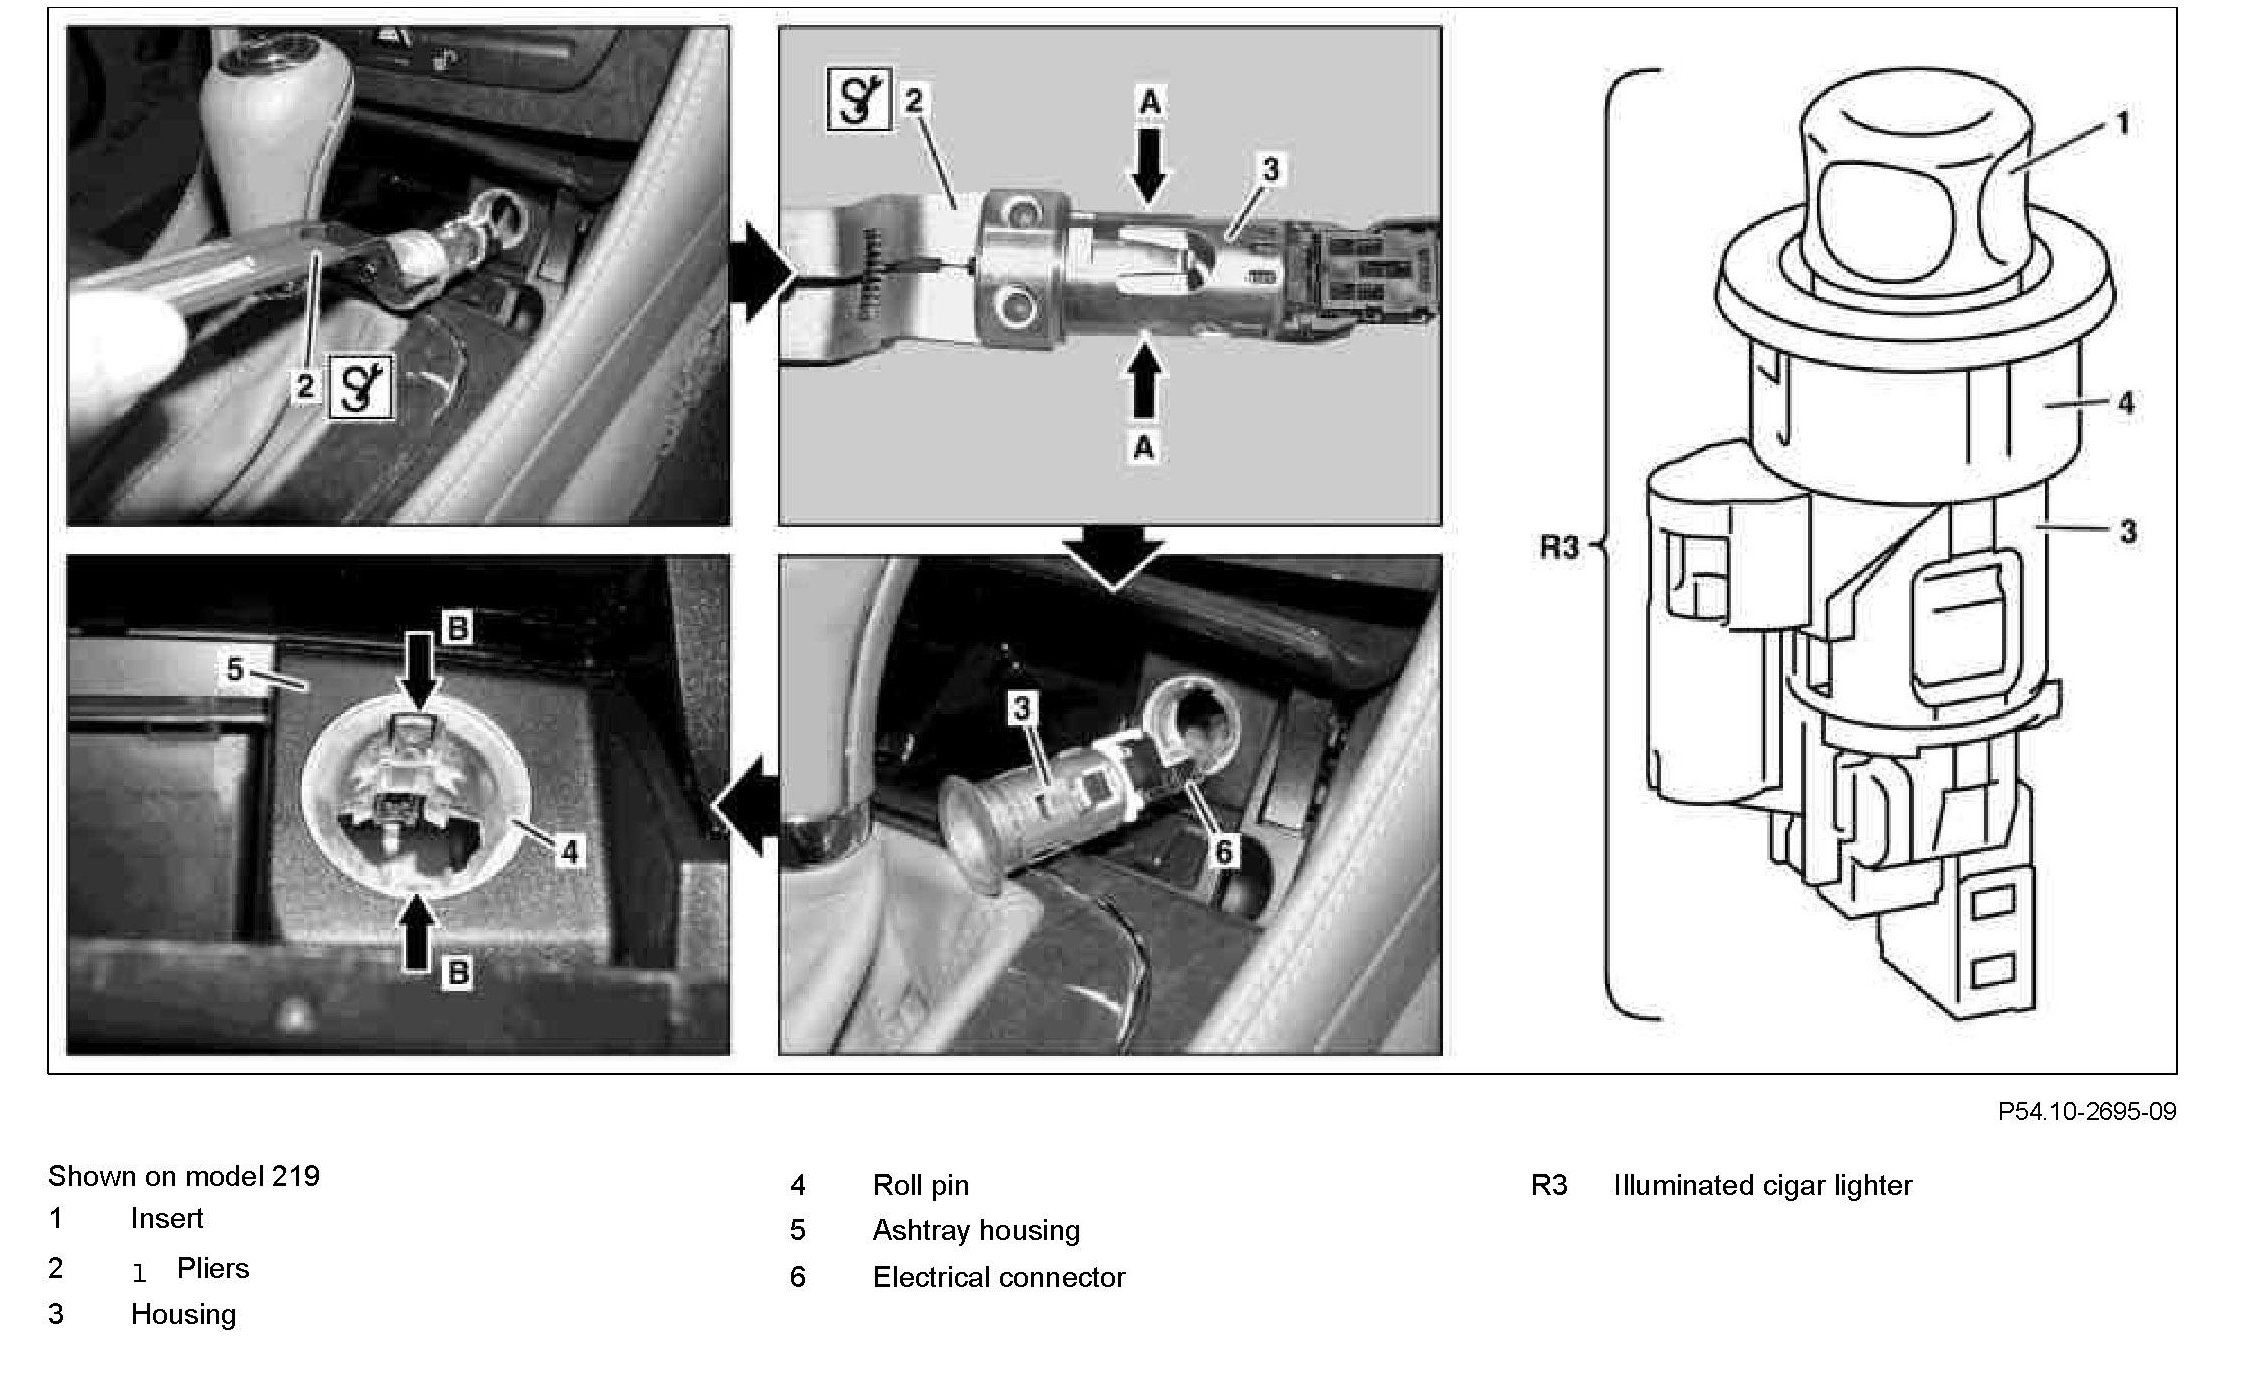 Mercedes W211 Wiring Cigarette Lighter Diagram Plug On Car Housing To Replace Assembly M Slk 280 For Dash